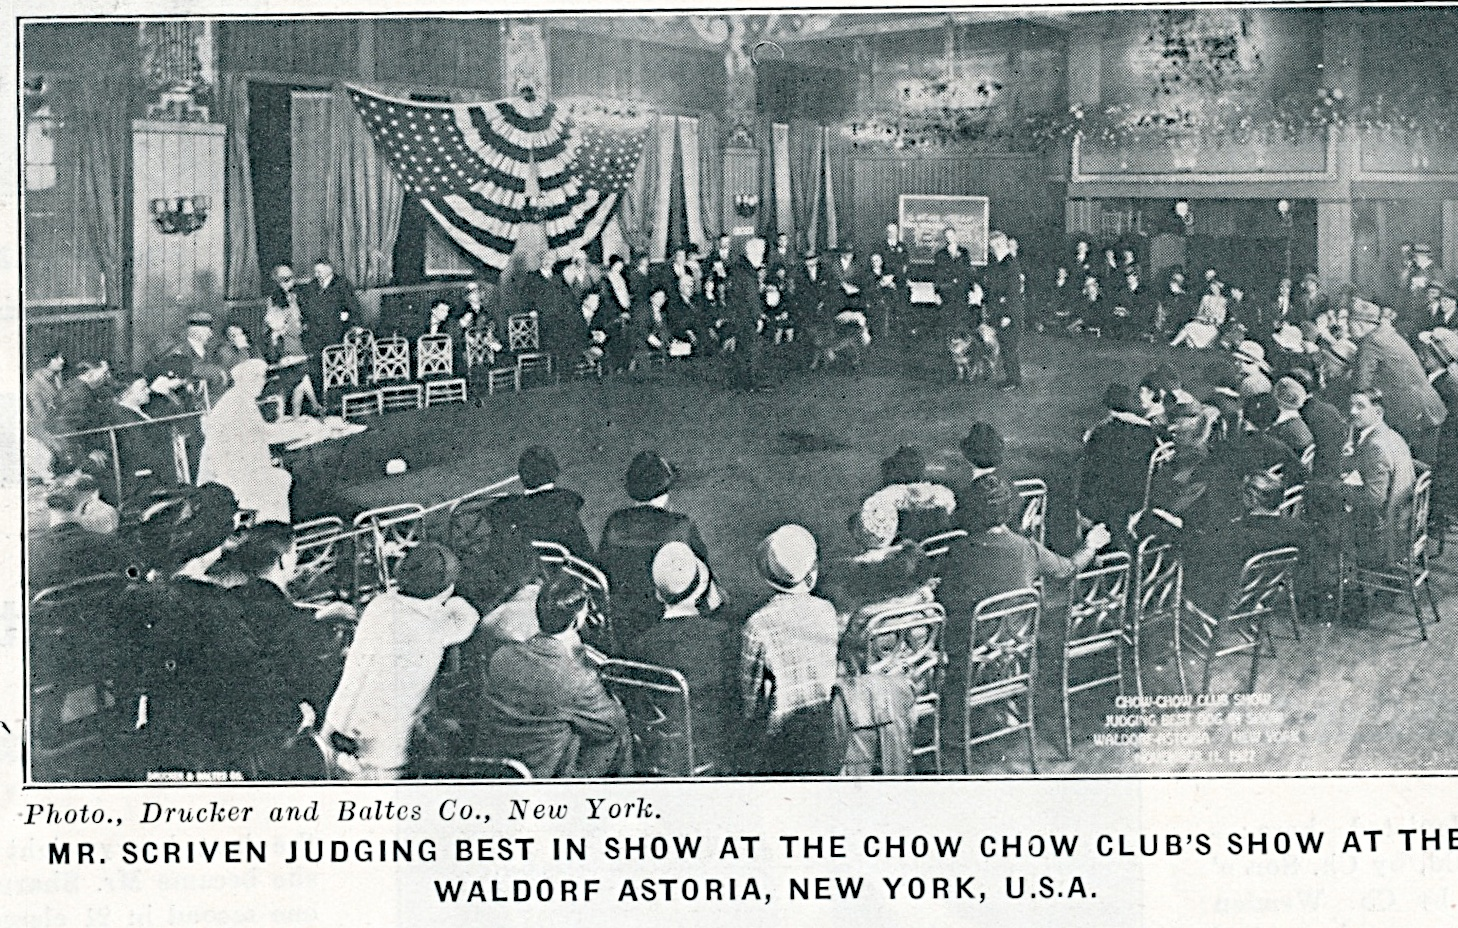 MULFRA article Sept 5 1930 Supplement to Our Dogs.. Mr. Scriven judging in 1927 at the Waldorf Astoria, New York, U.S.A.5